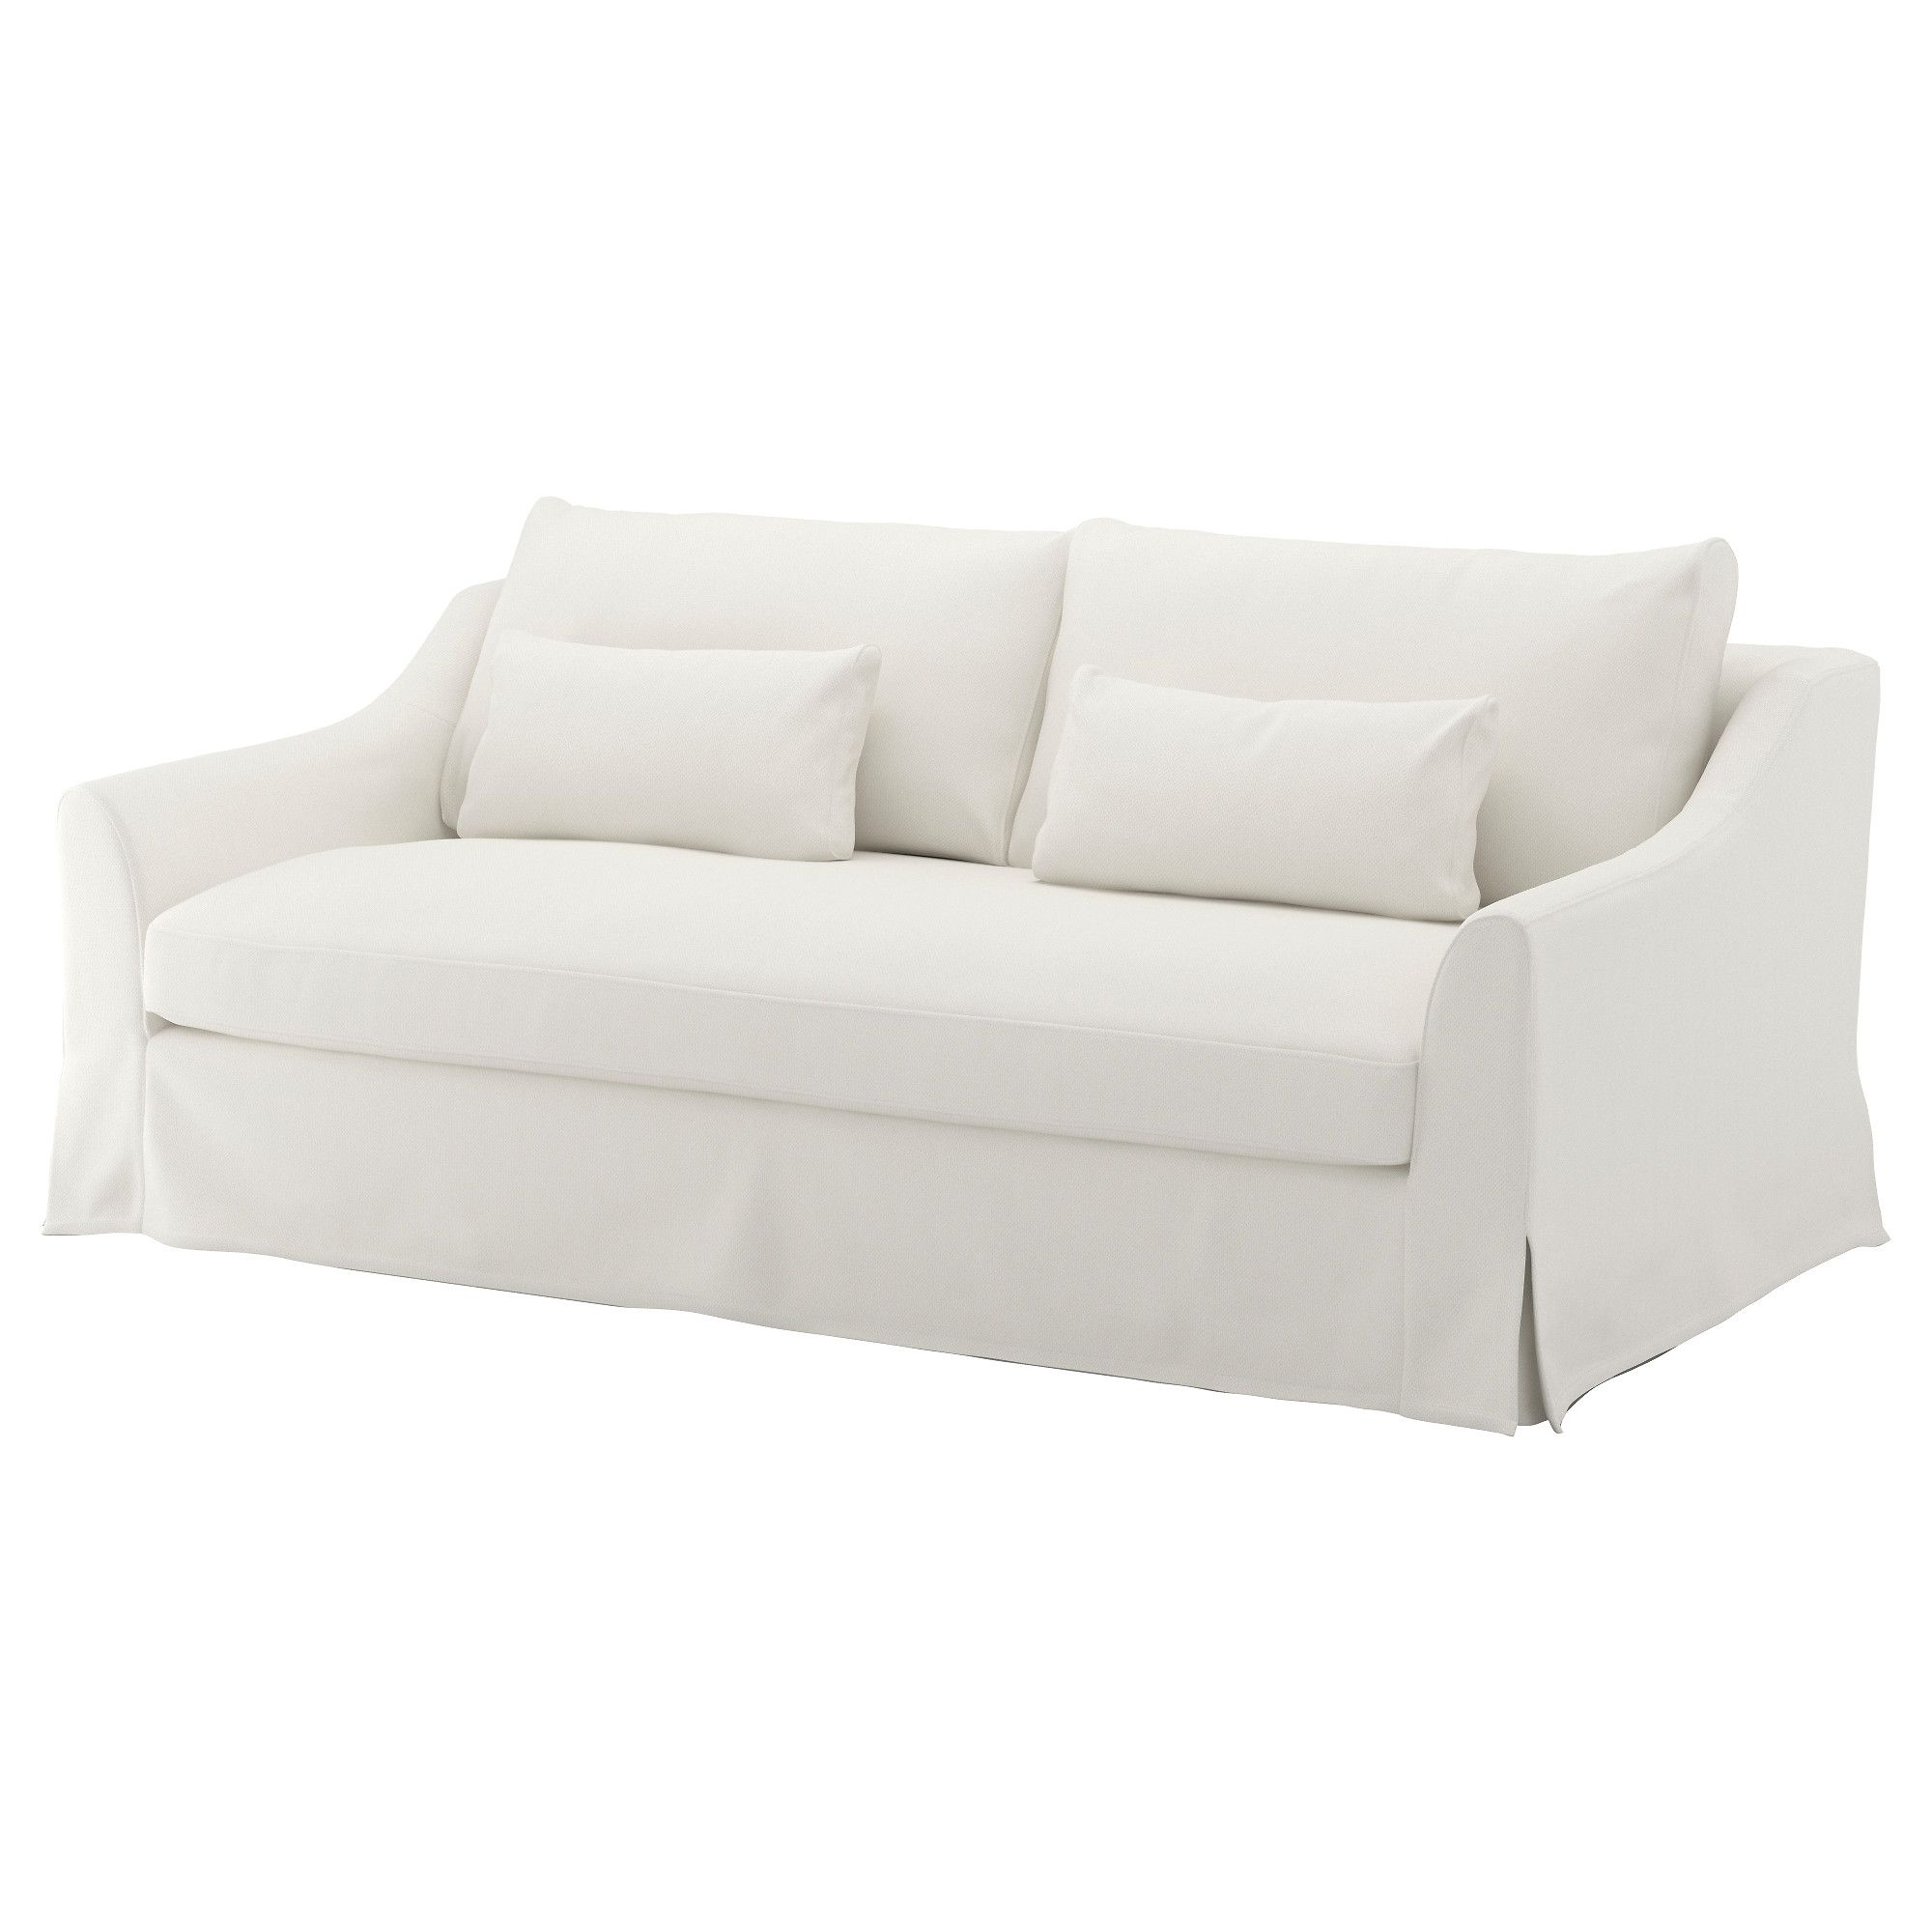 Merveilleux IKEA   FÄRLÖV, Sofa, Flodafors White, , Pocket Springs That Follow Your  Body. The Top Layer Of Fiber Balls And The Soft, Embracing Feeling Makes  The Sofa ...